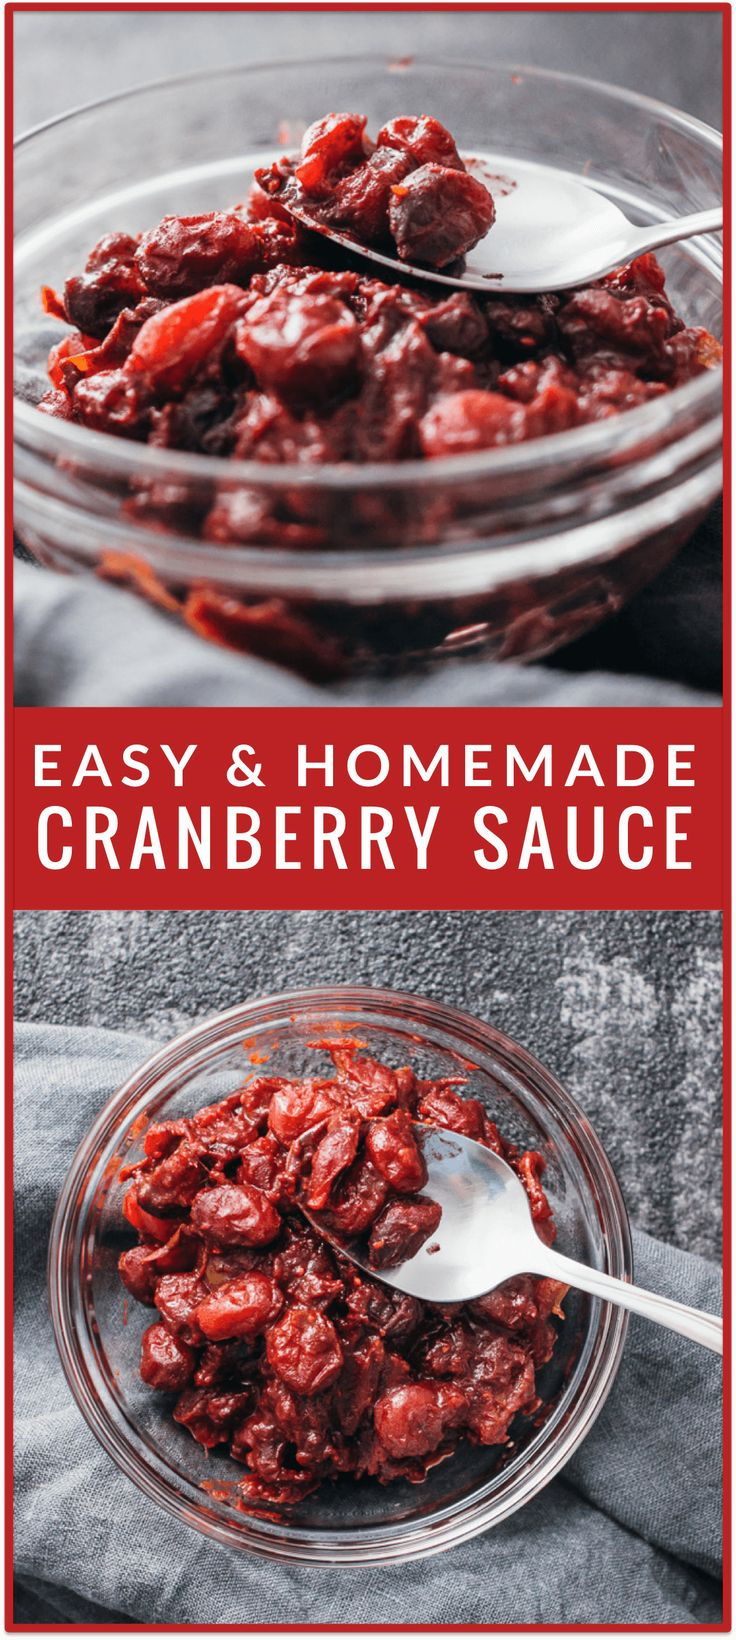 Easy homemade cranberry sauce - Today I'm sharing a wonderful family recipe for cranberry sauce! This is a healthy cinnamon-rich cranberry sauce sweetened using medjool dates with no added sugar. It's very easy to make this at home (one-pot recipe done in 10 minutes) so you should add it to your Thanksgiving menu! - savorytooth.com